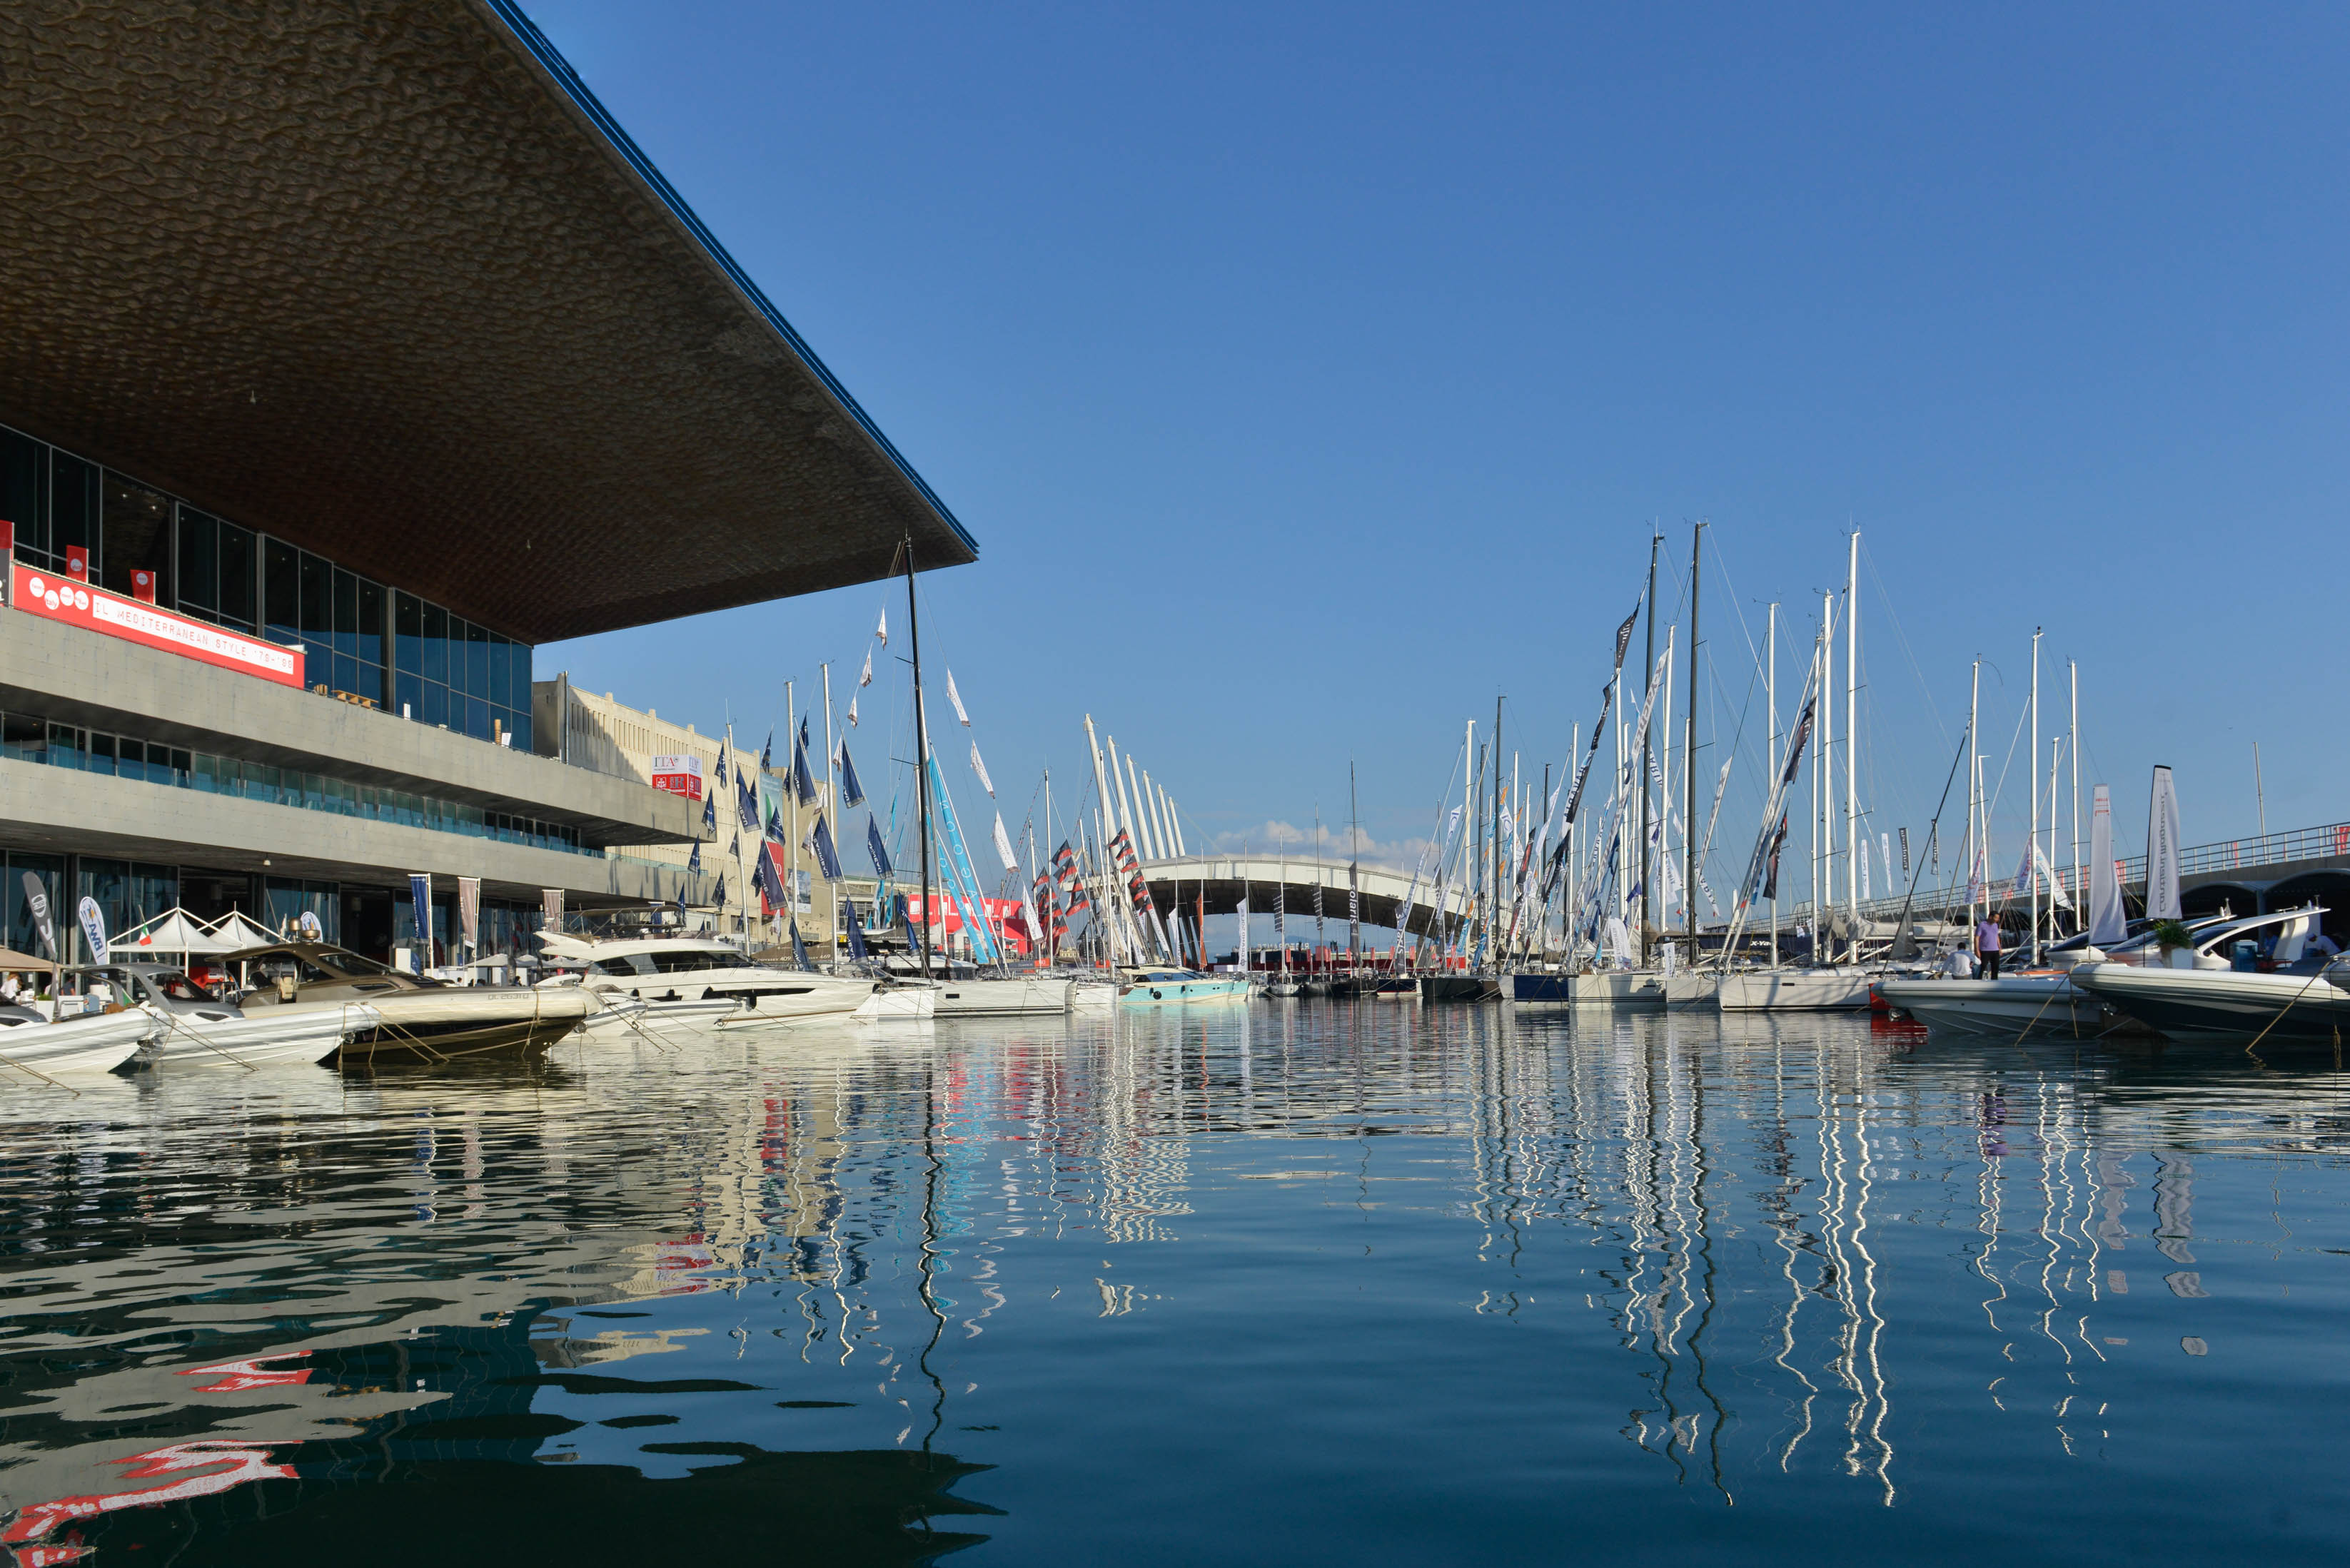 Genoa International Boat Show 2014